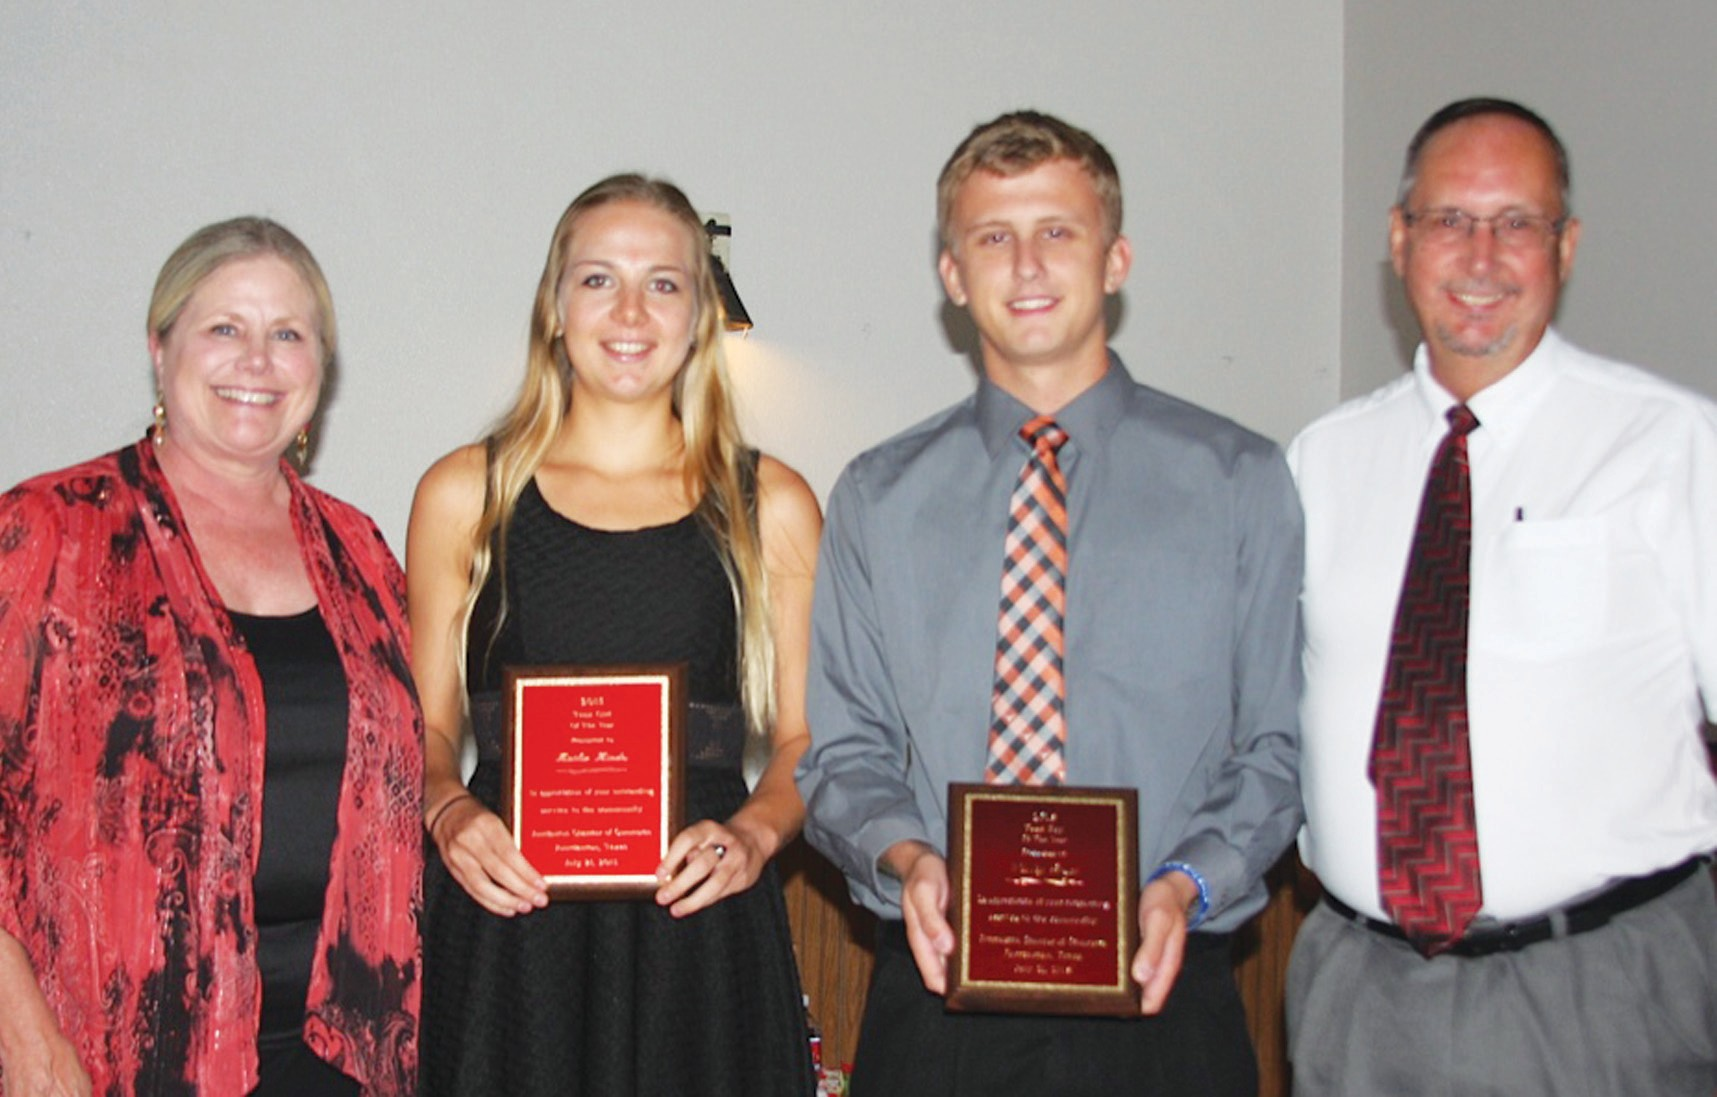 Dr. Lana Collavo, JISD Superintendent (left), presented awards to two outstanding teenagers at the Jourdanton Chamber banquet last week. Kaitlin Hindes received the Girl Teenager of the Year and Wesley Pesek was named Boy Teenager of the Year. Jourdanton High School principal, Keith Chapman, was named Educator of the Year.